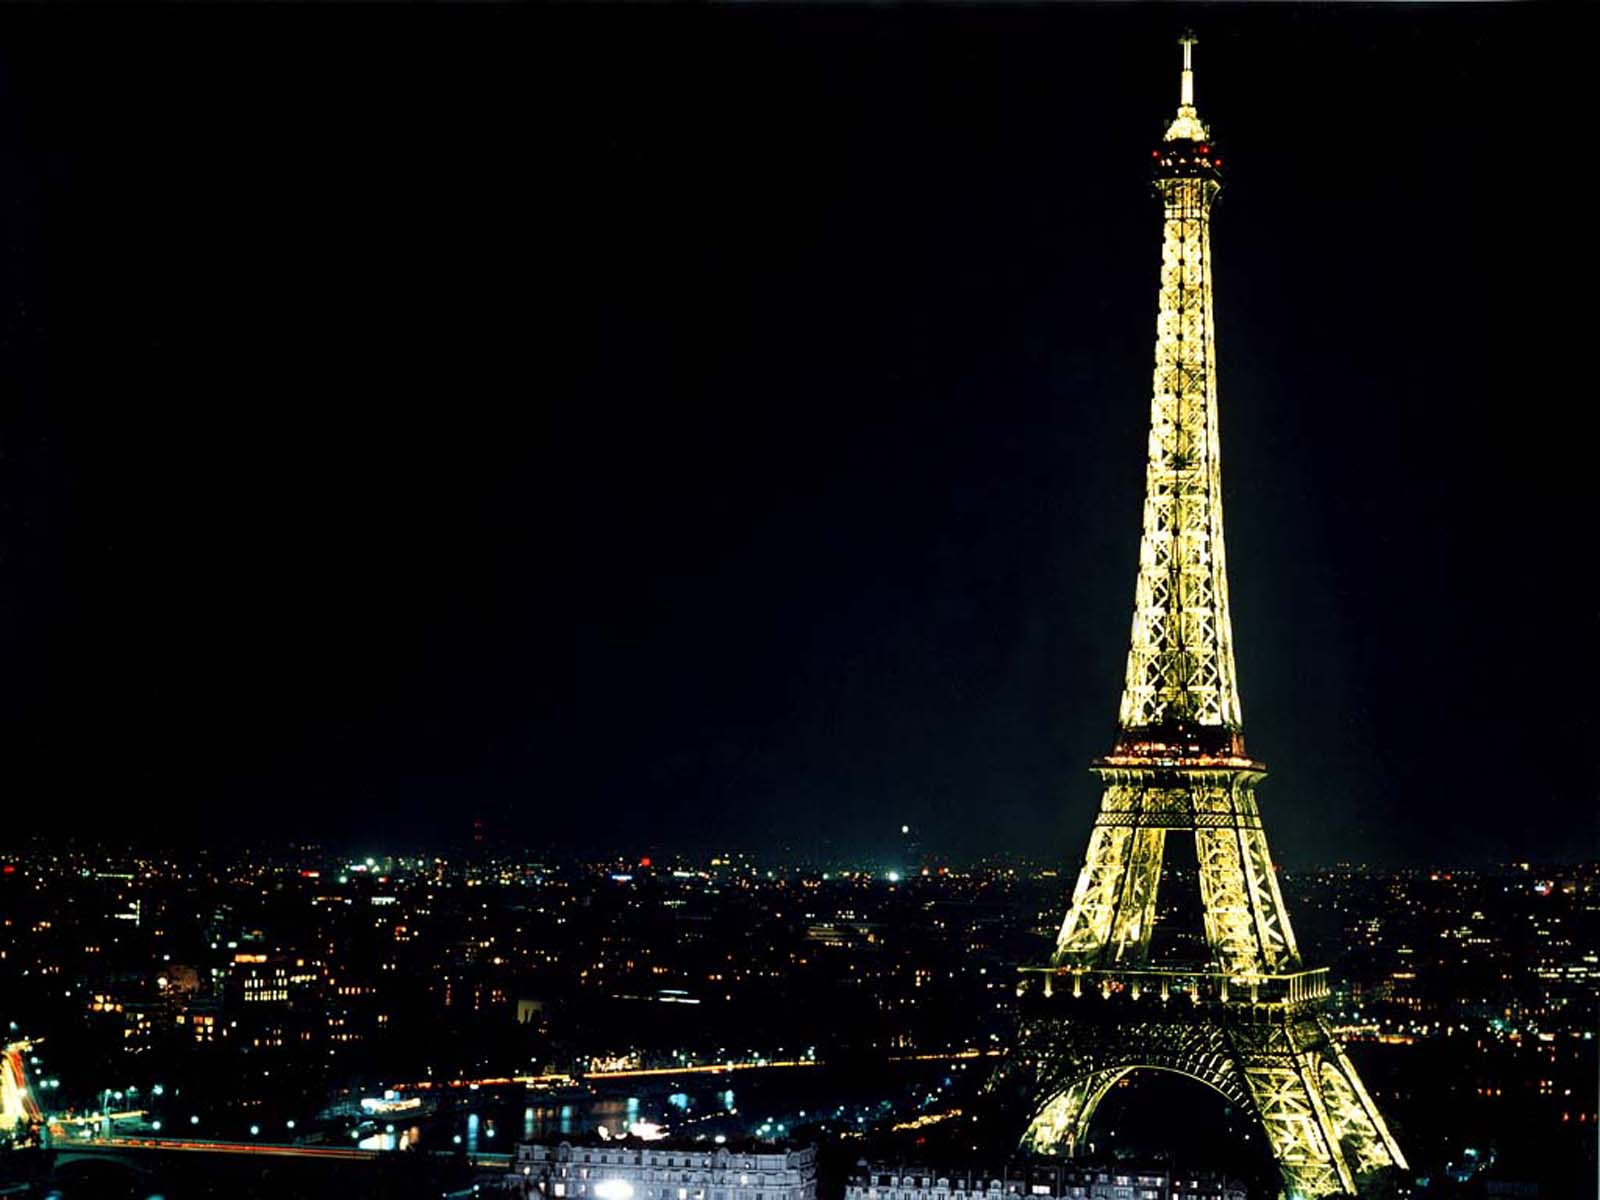 wallpapers eiffel tower wallpapers. Black Bedroom Furniture Sets. Home Design Ideas